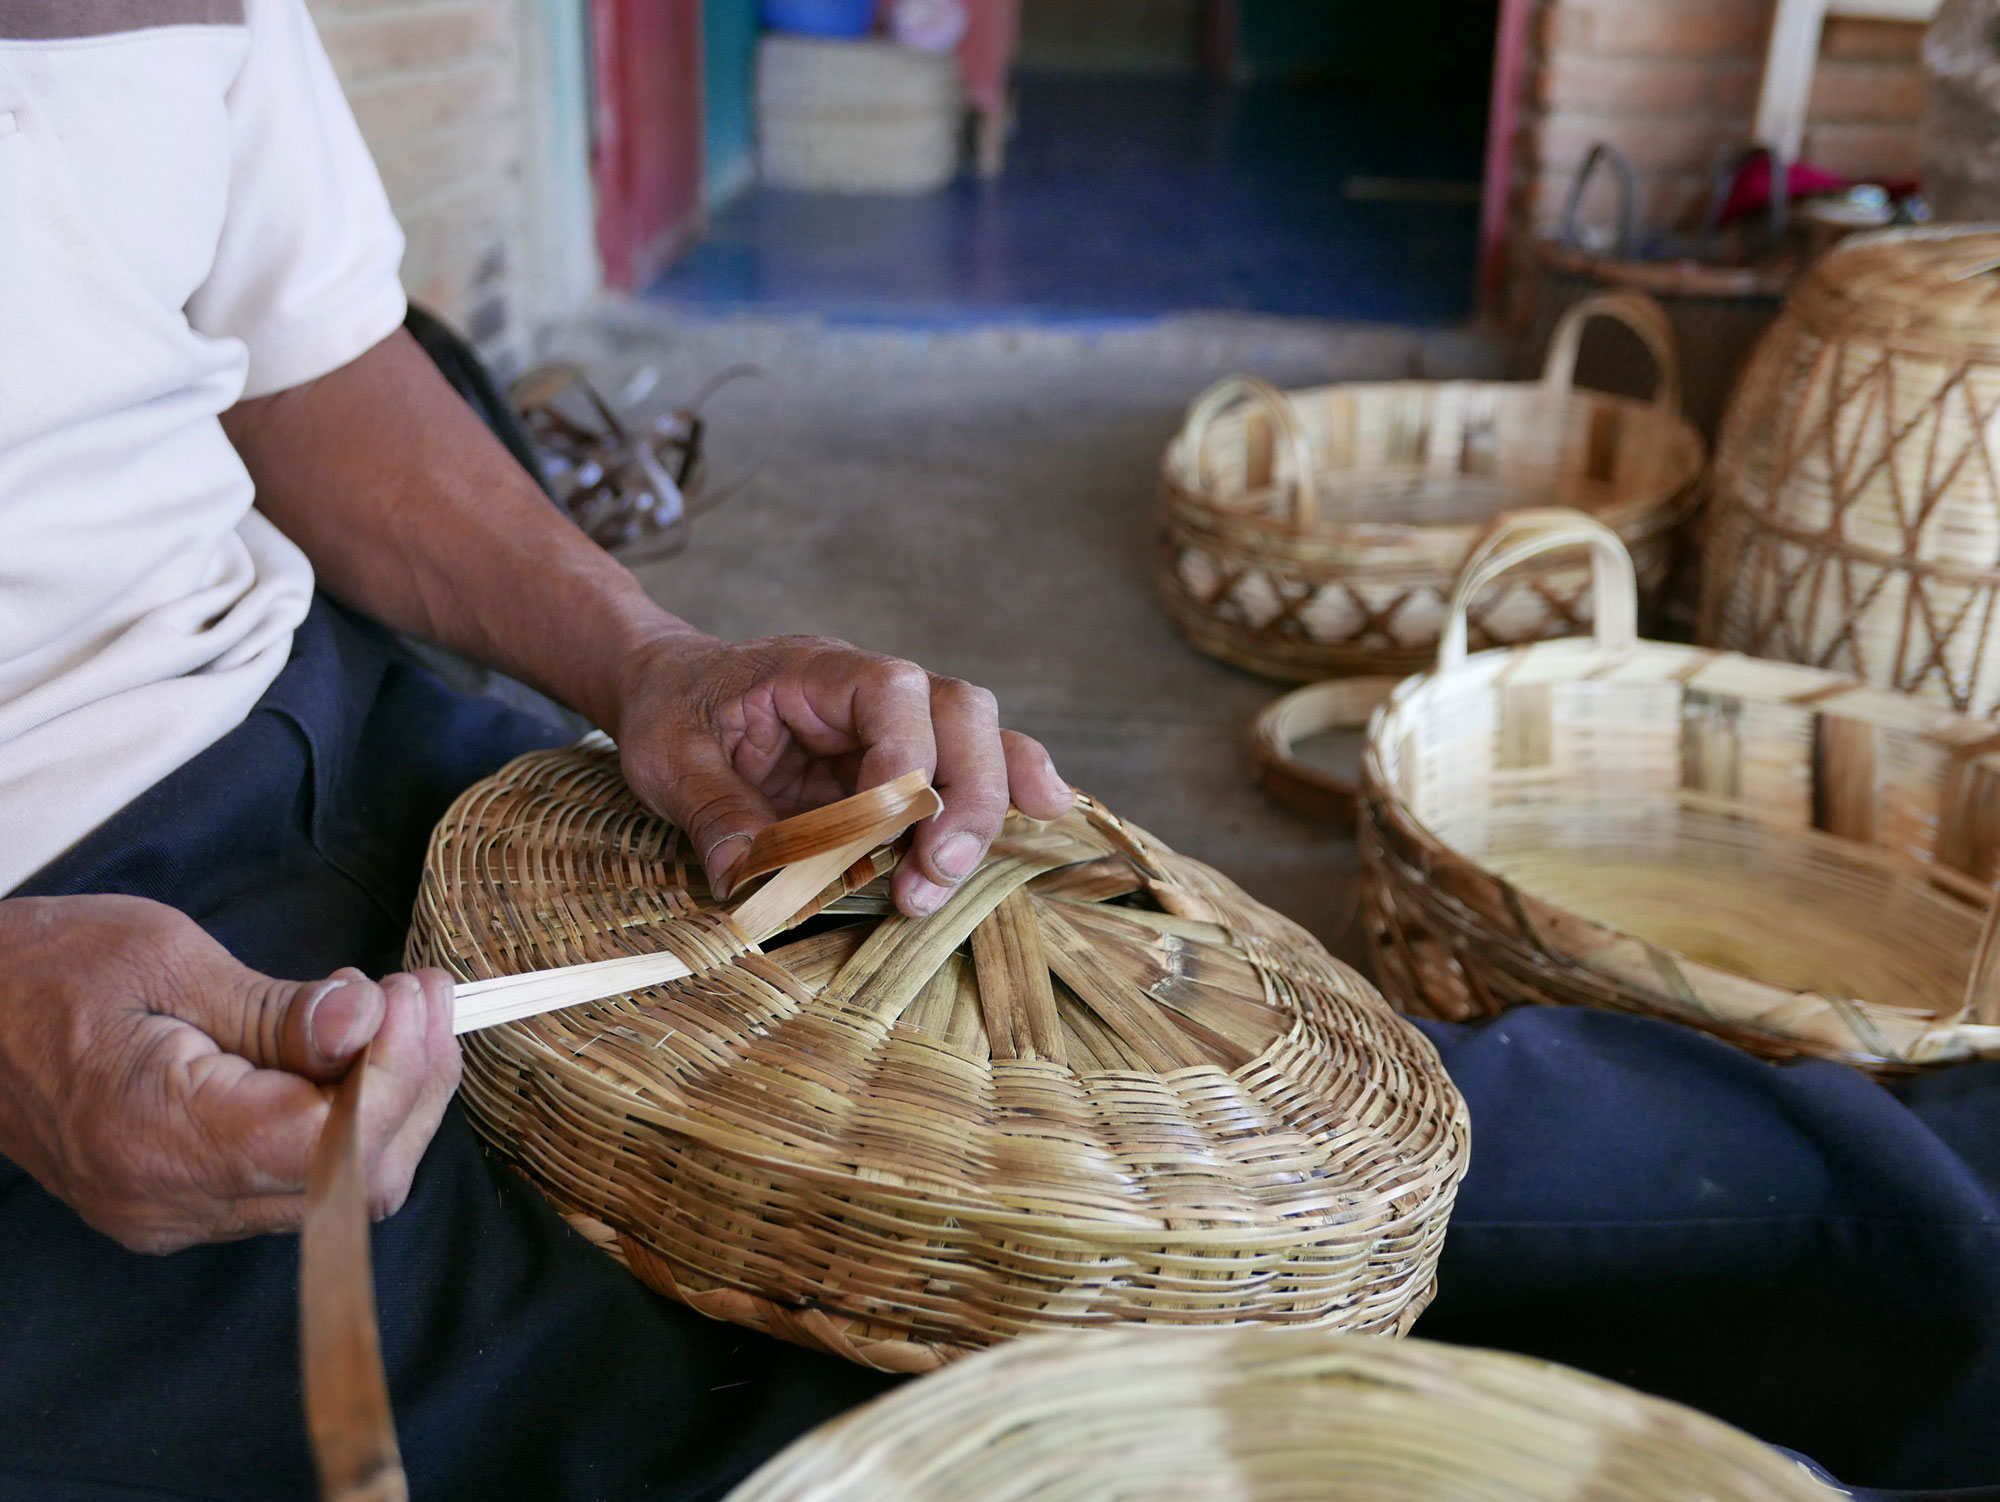 How to Weave a Basket in Oaxaca Mexico - www.nidocollective.com/carrizoweaving #carrizo #canastascarrizo #mexicanartisancrafts